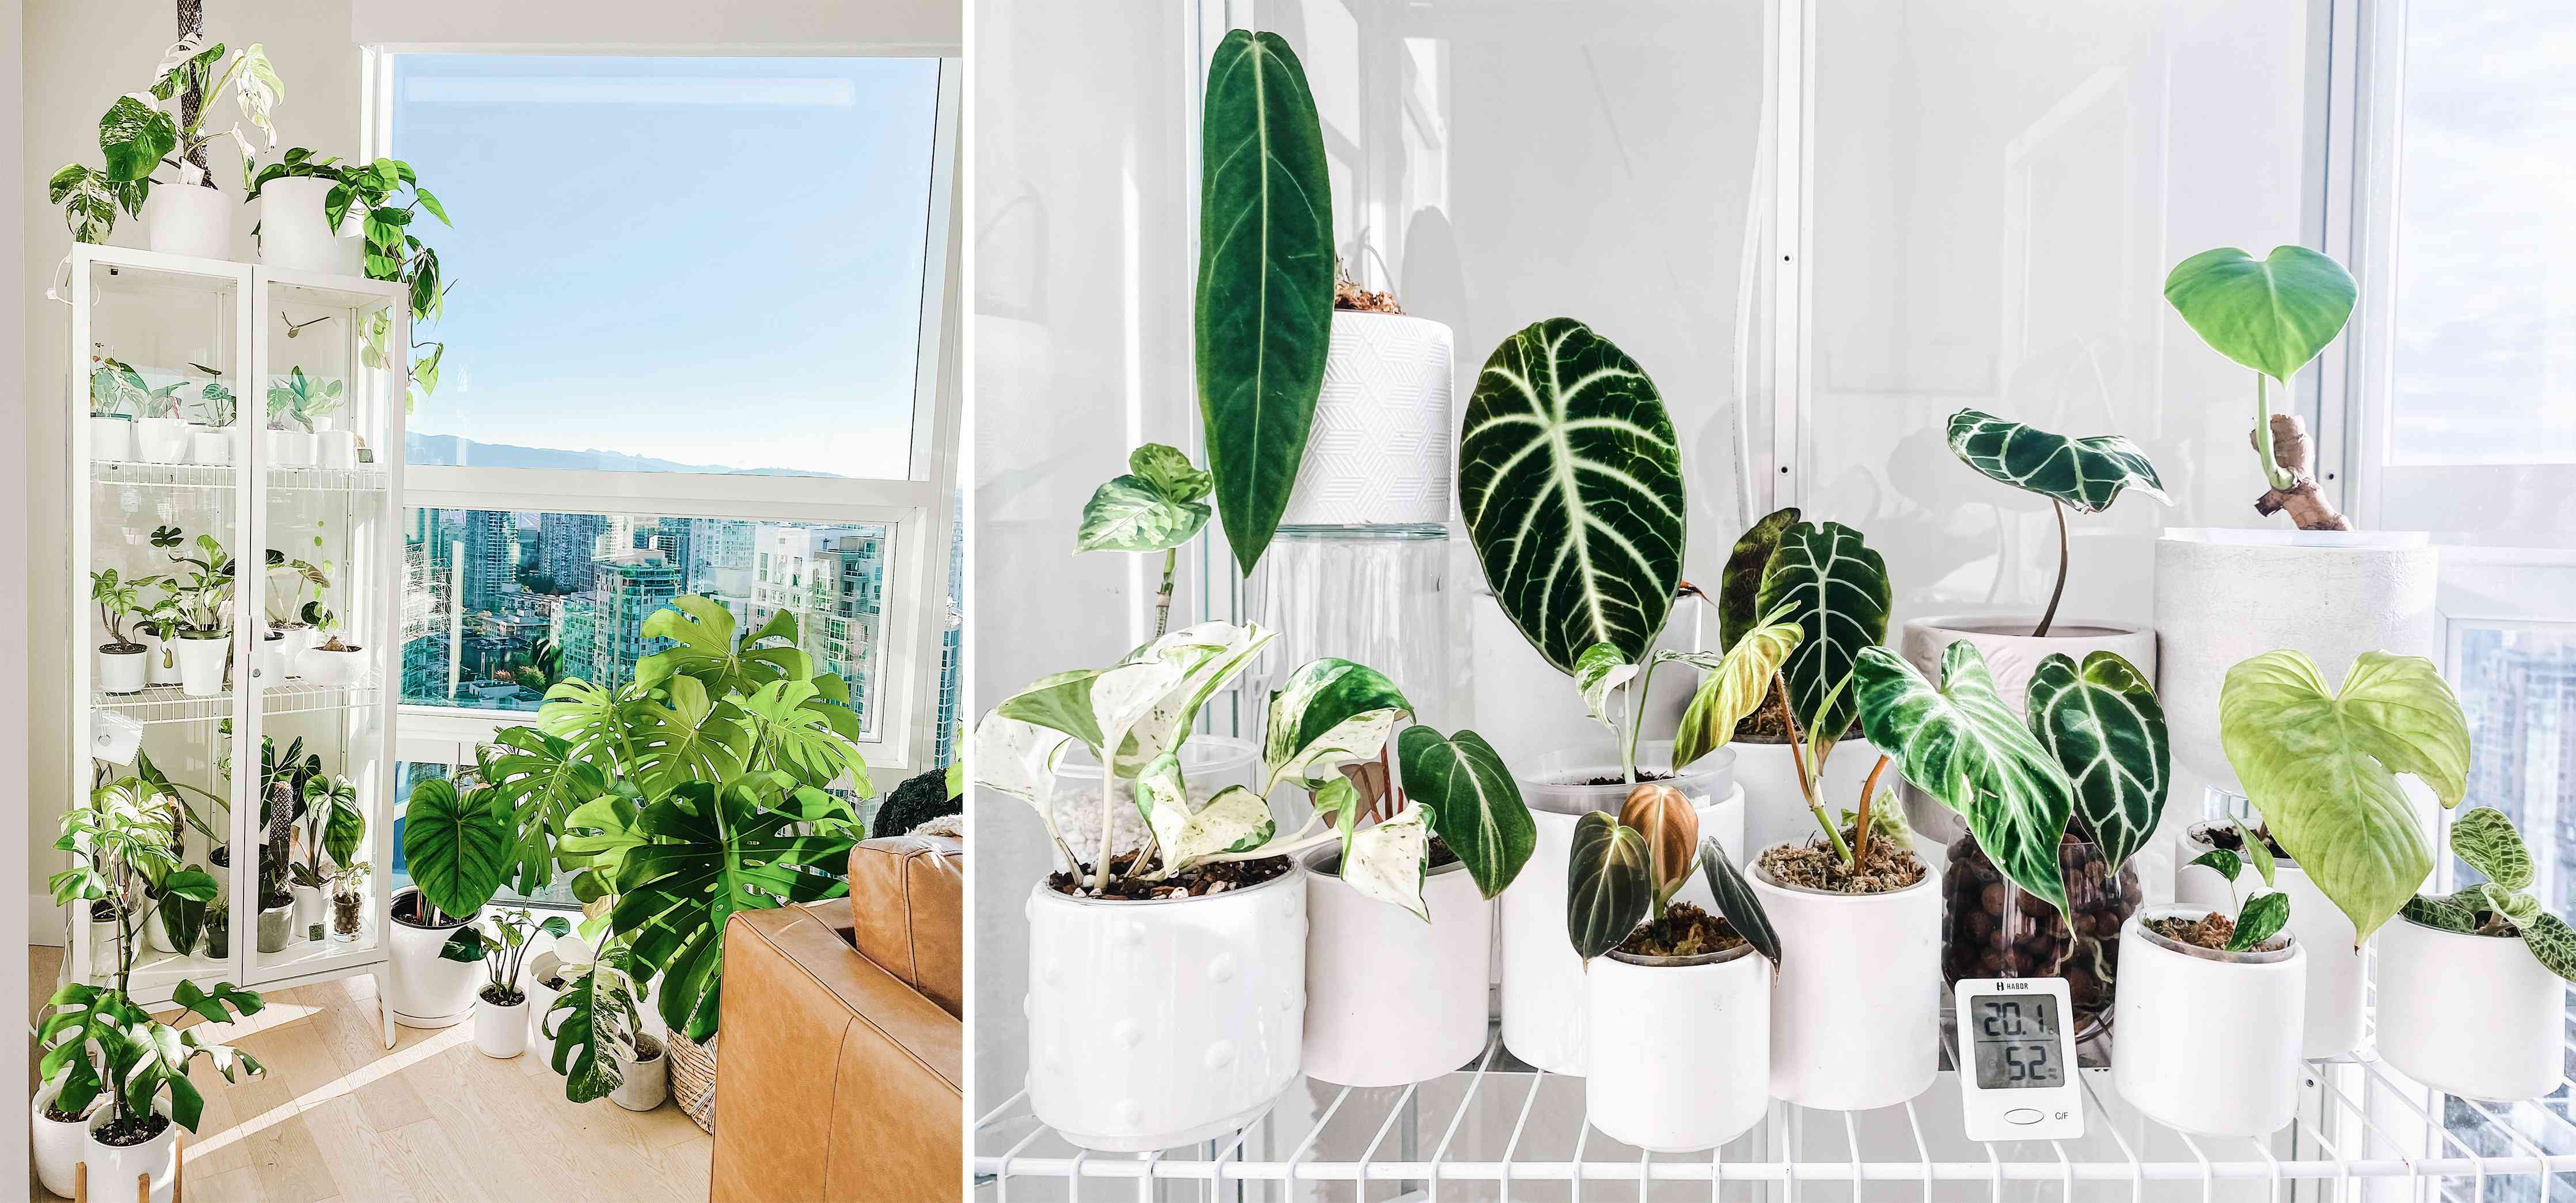 Erin Bishop's IKEA Milsbo cabinet greenhouse hack in Vancouver that features anthuriums, philodendrons, and alocasias